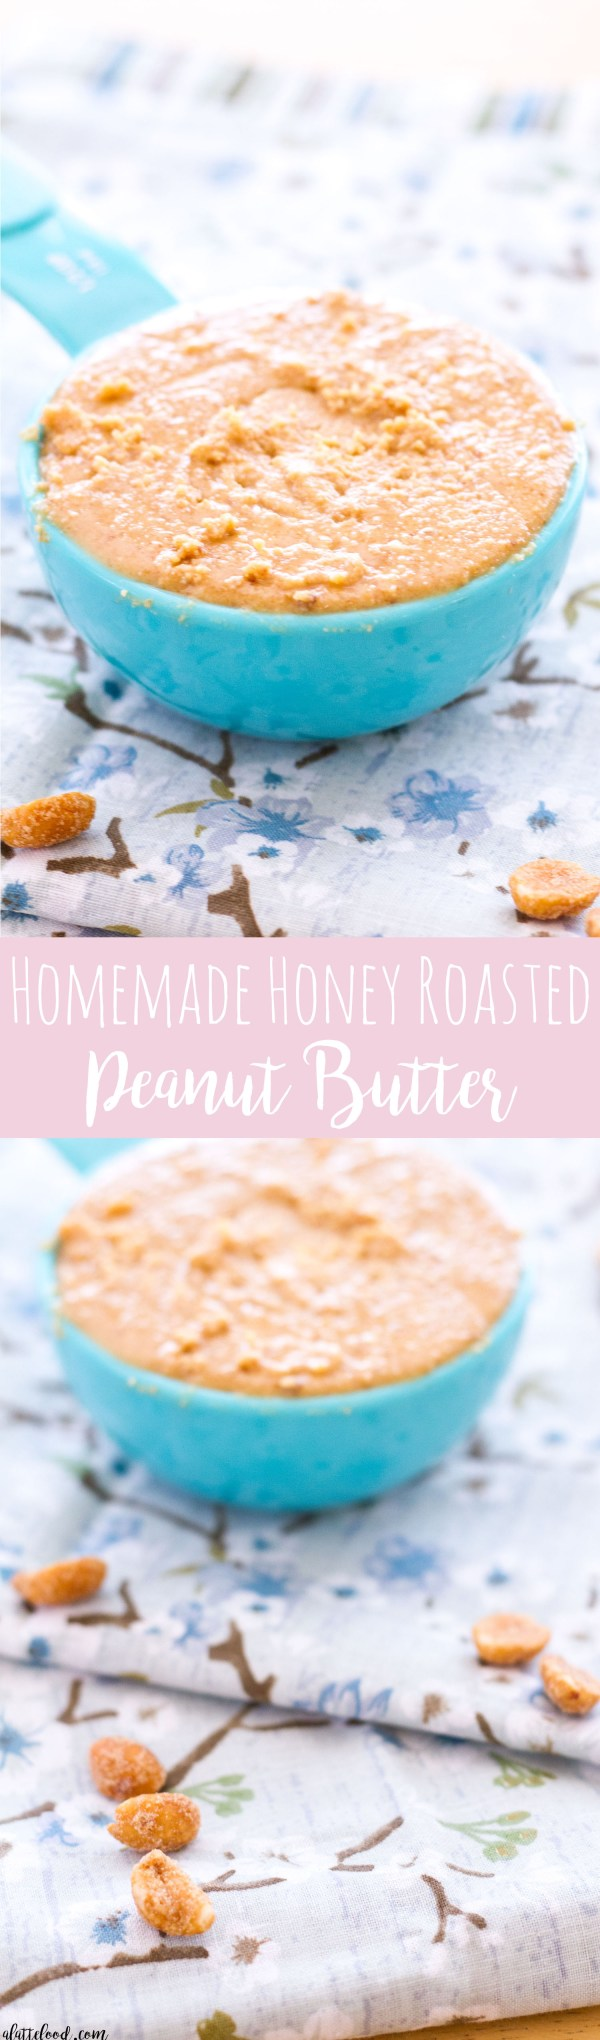 Homemade Peanut Butter is such a simple recipe! Honey Roasted Peanuts are pureed until they are smooth and creamy, making the best Homemade Honey Roasted Peanut Butter!